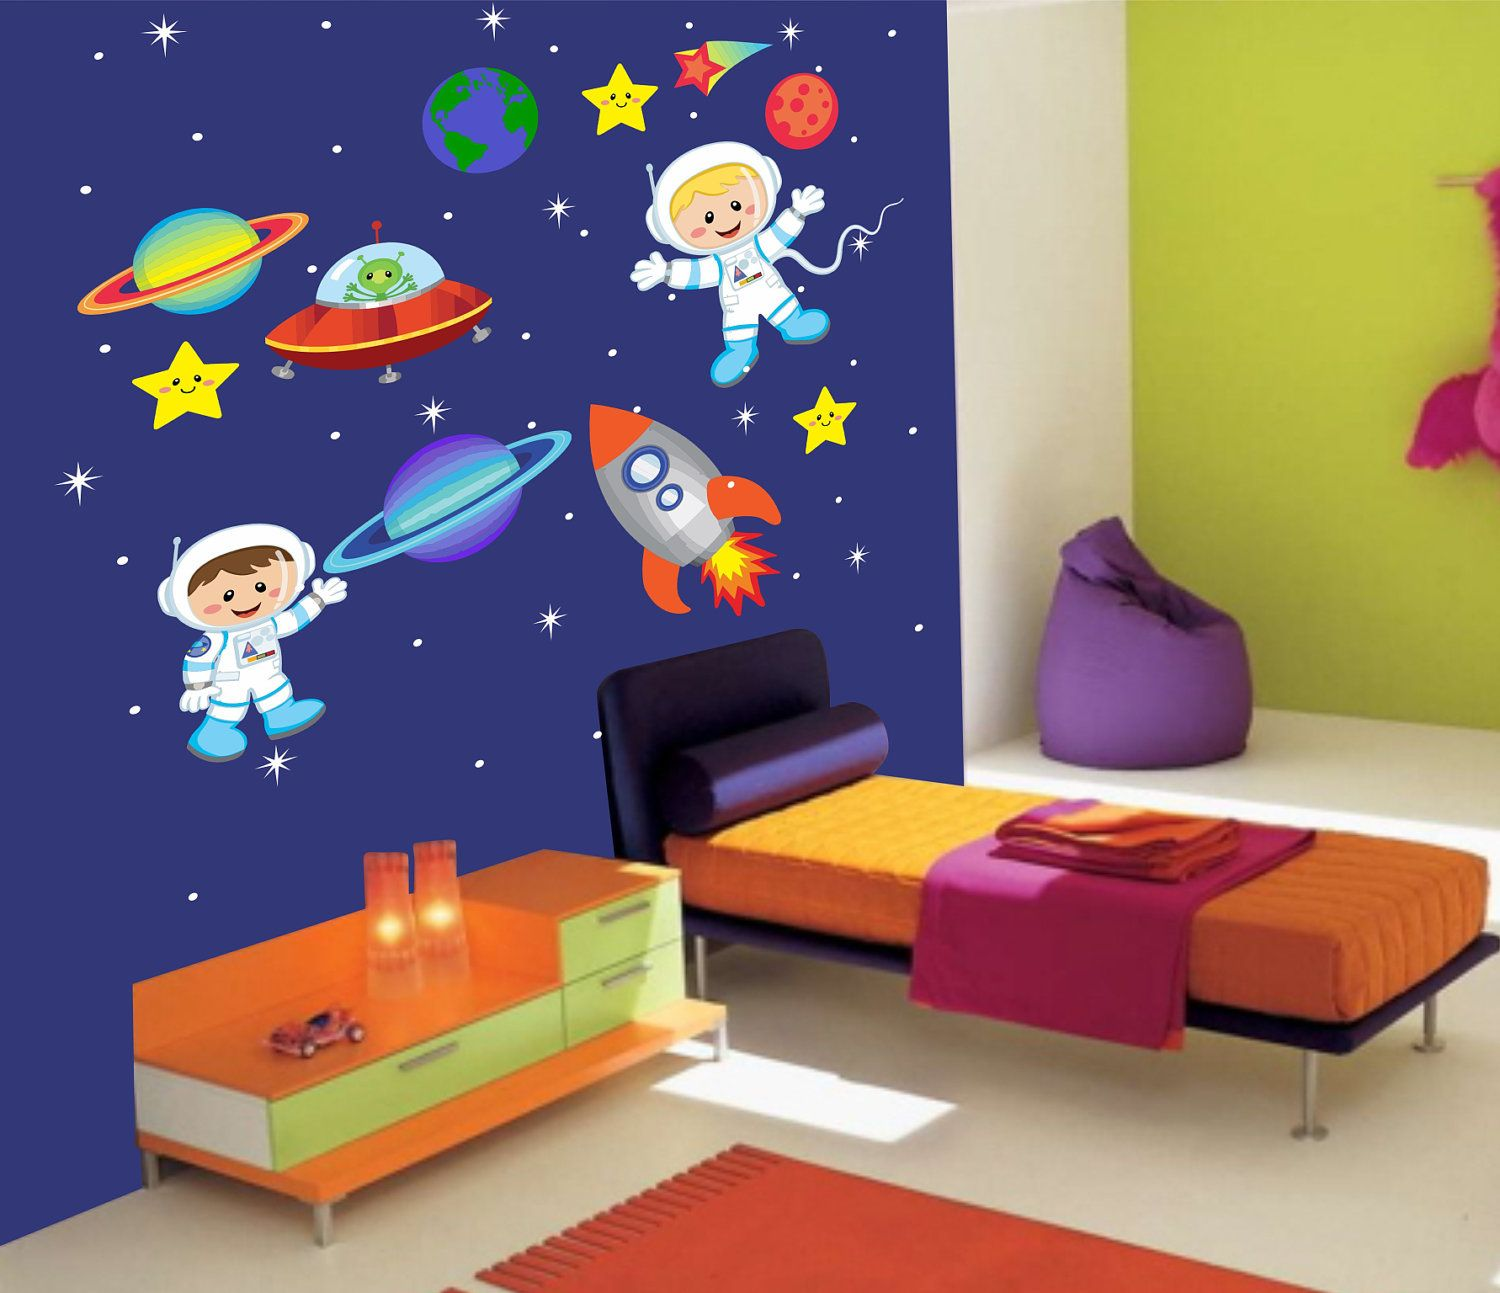 Outer Space Room Decor For Teen: Outer Space Children Wall Decal